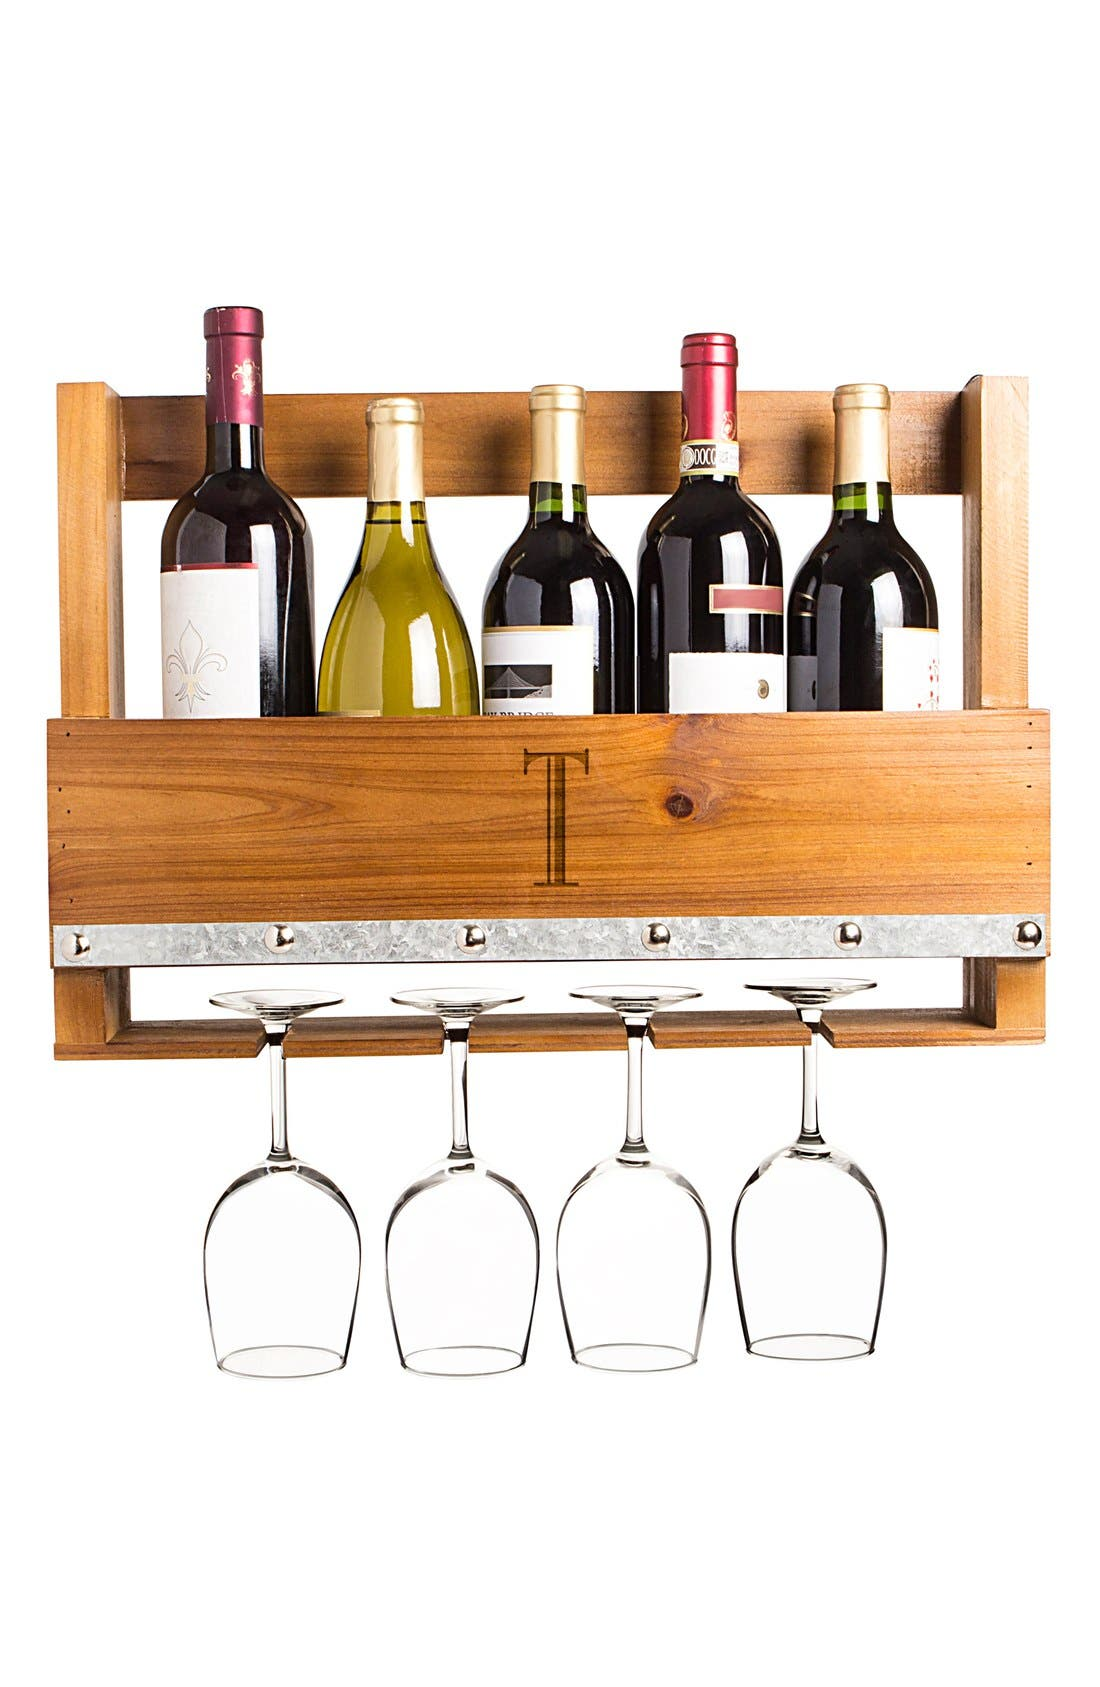 CATHY'S CONCEPTS Personalized Rustic Wall Wine Rack &